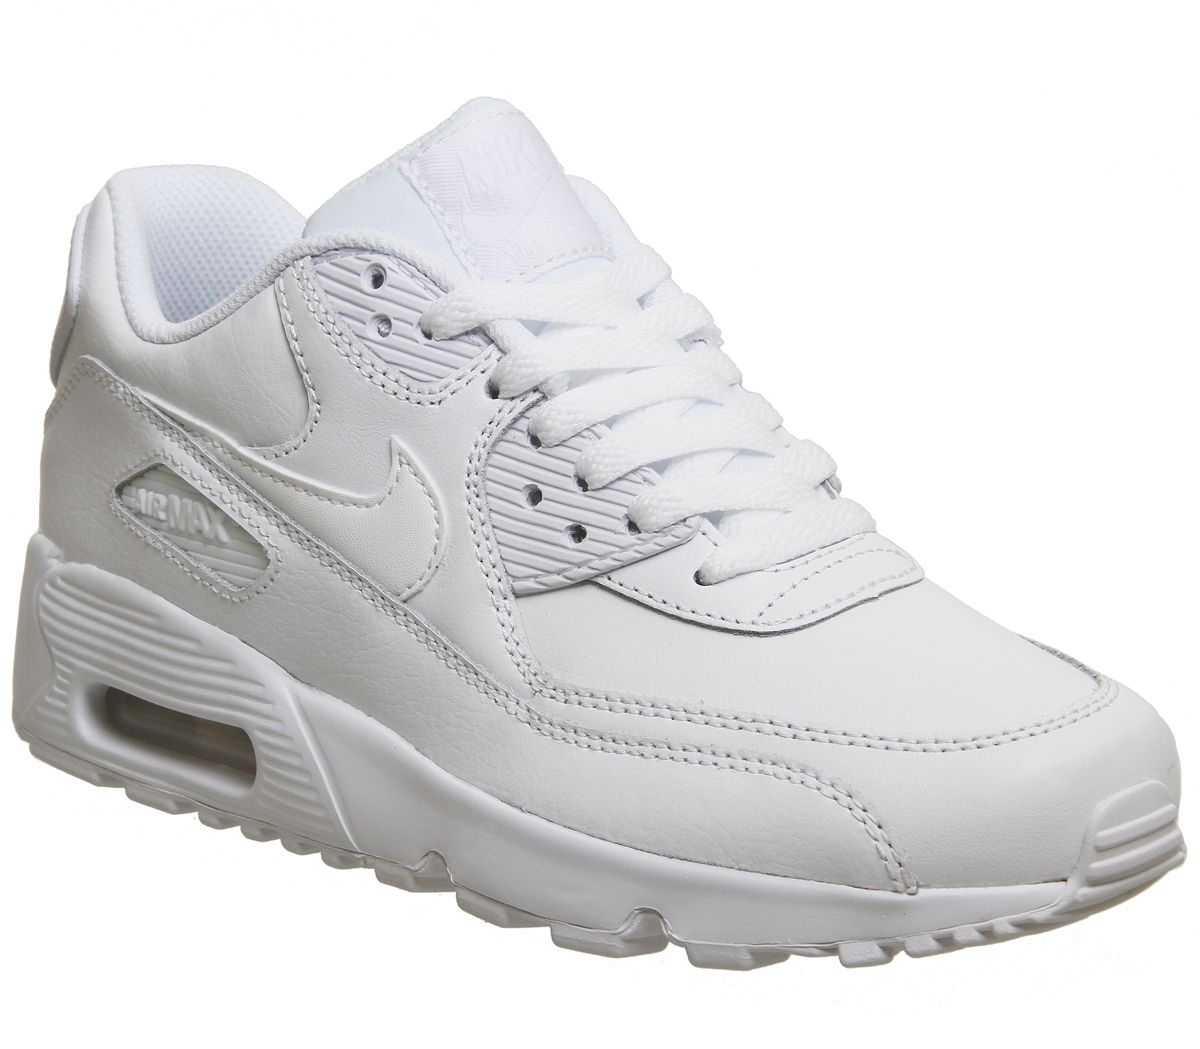 cdc94cb985 Nike Air Max 90 Trainers White Mono Leather - Hers trainers